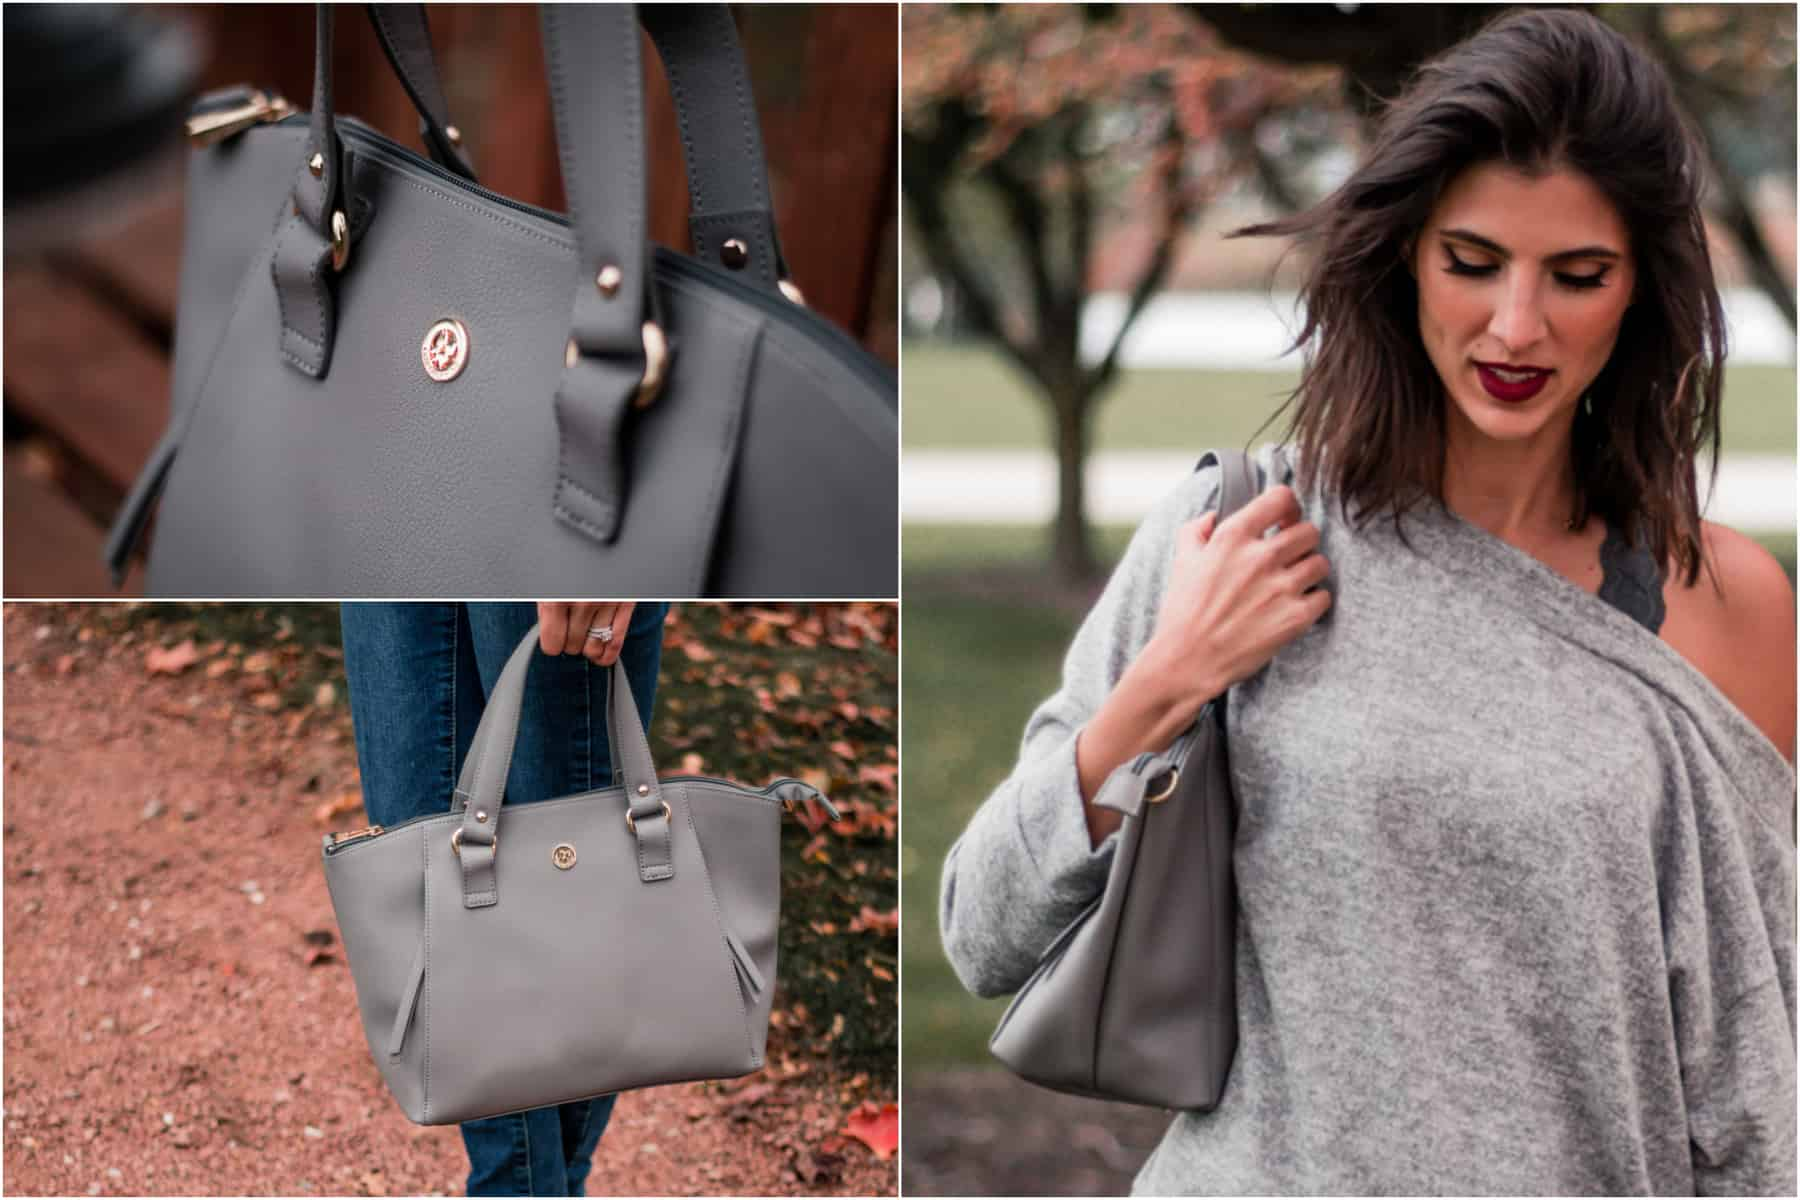 Ora Delphine DAILY MOM PARENTS PORTAL Gifts for fashion lovers